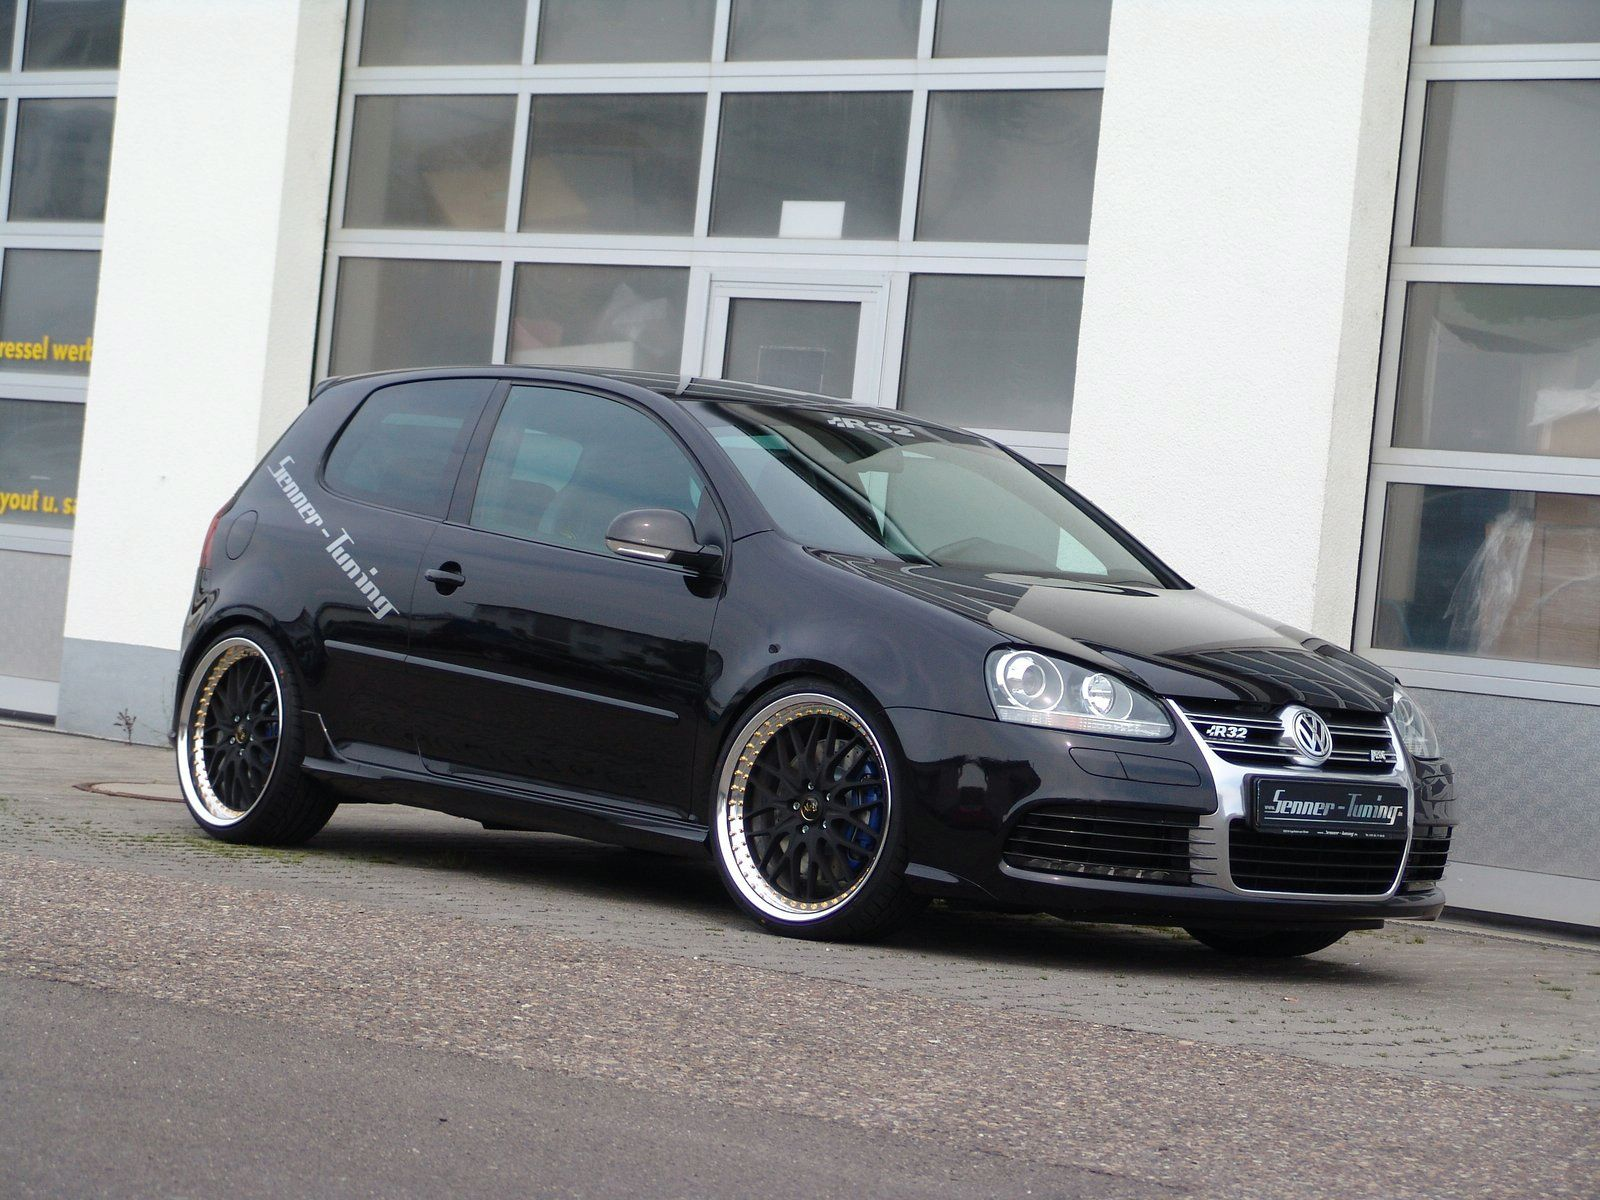 vw golf v r32 by senner tuning vw golf tuning. Black Bedroom Furniture Sets. Home Design Ideas